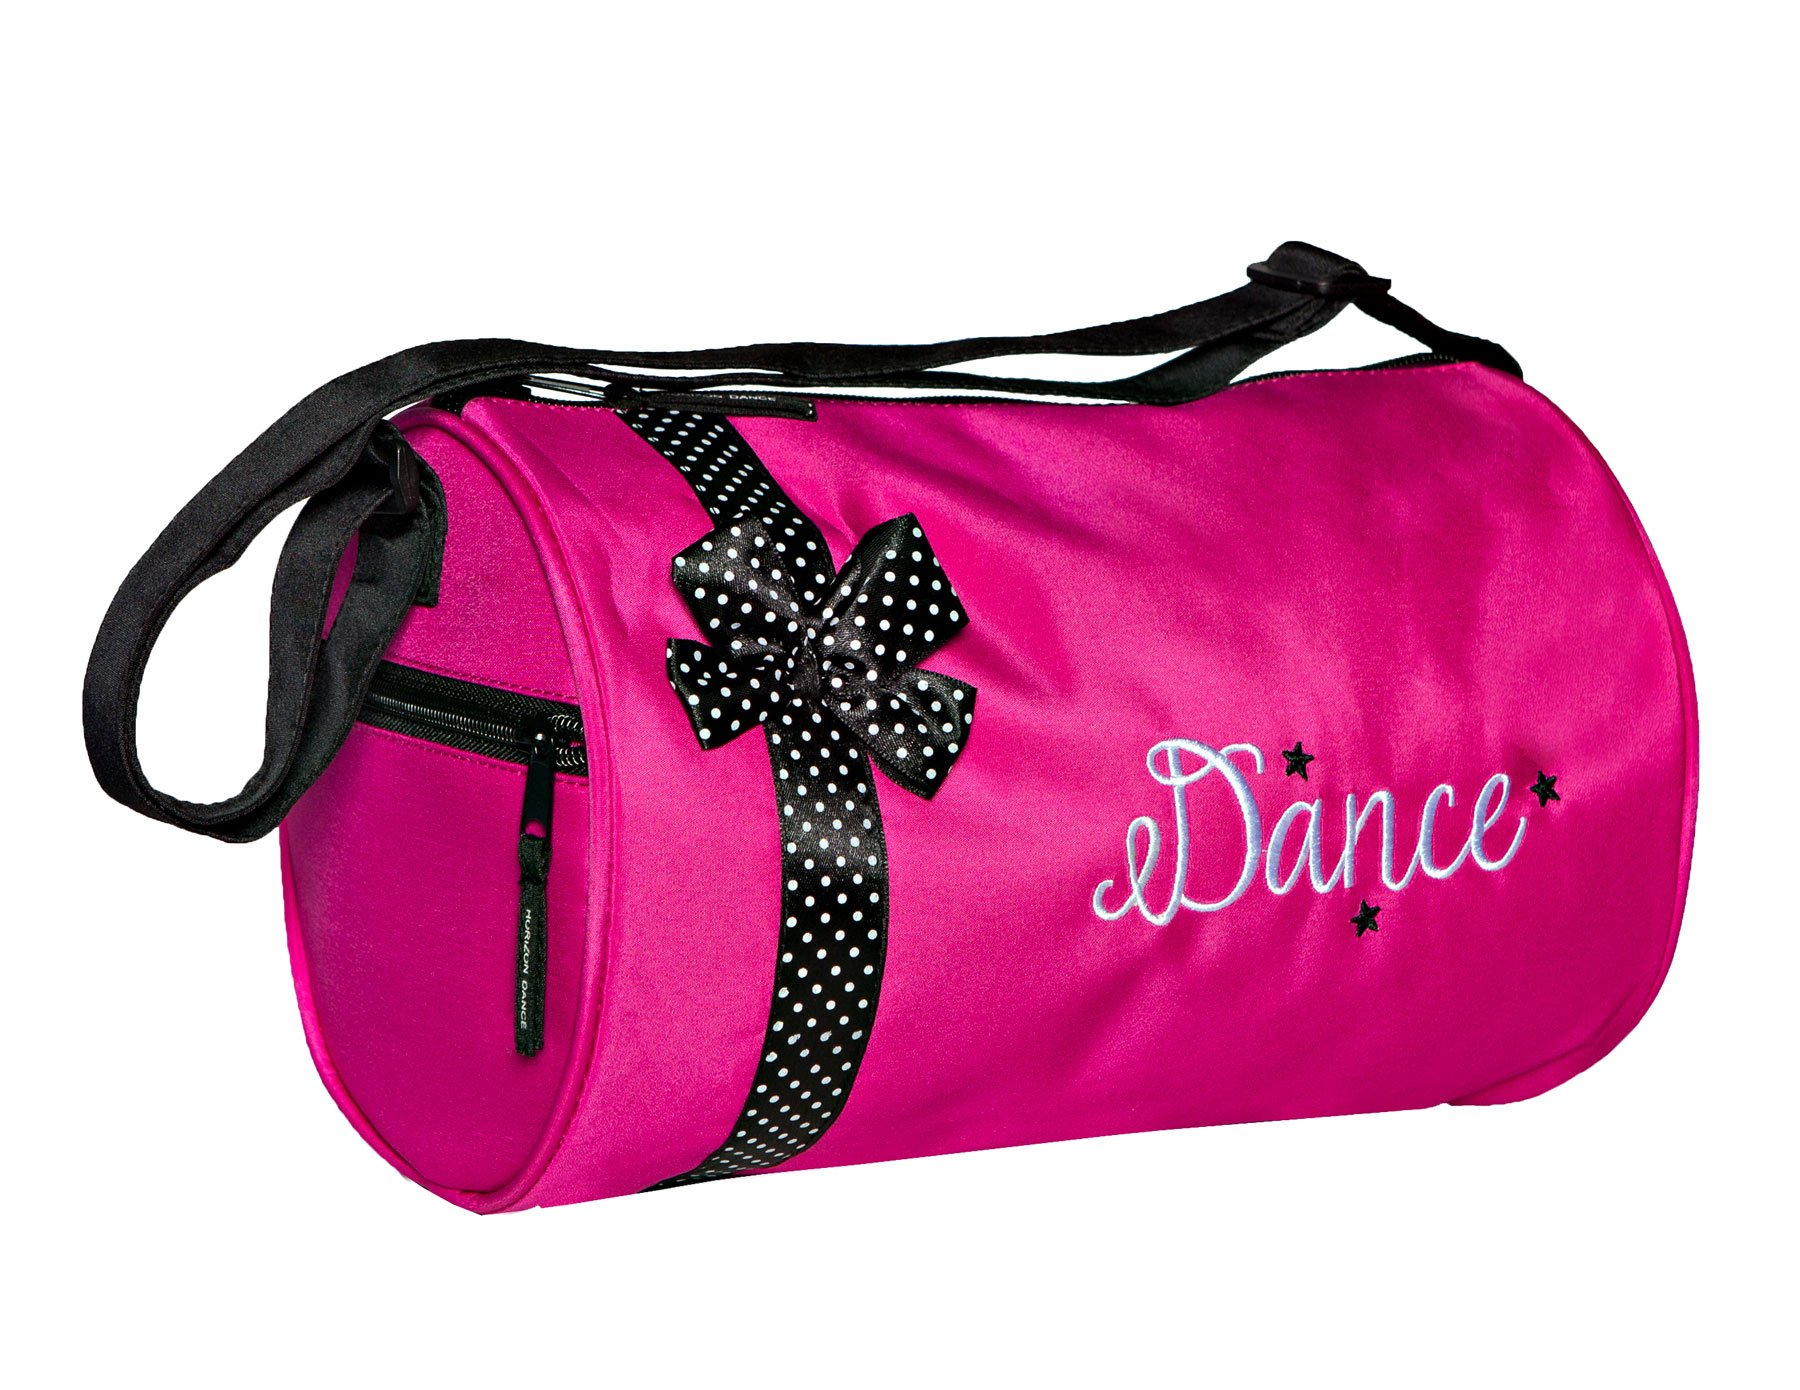 Horizon Dance 2003 Amelia Small Dance Duffel Bag